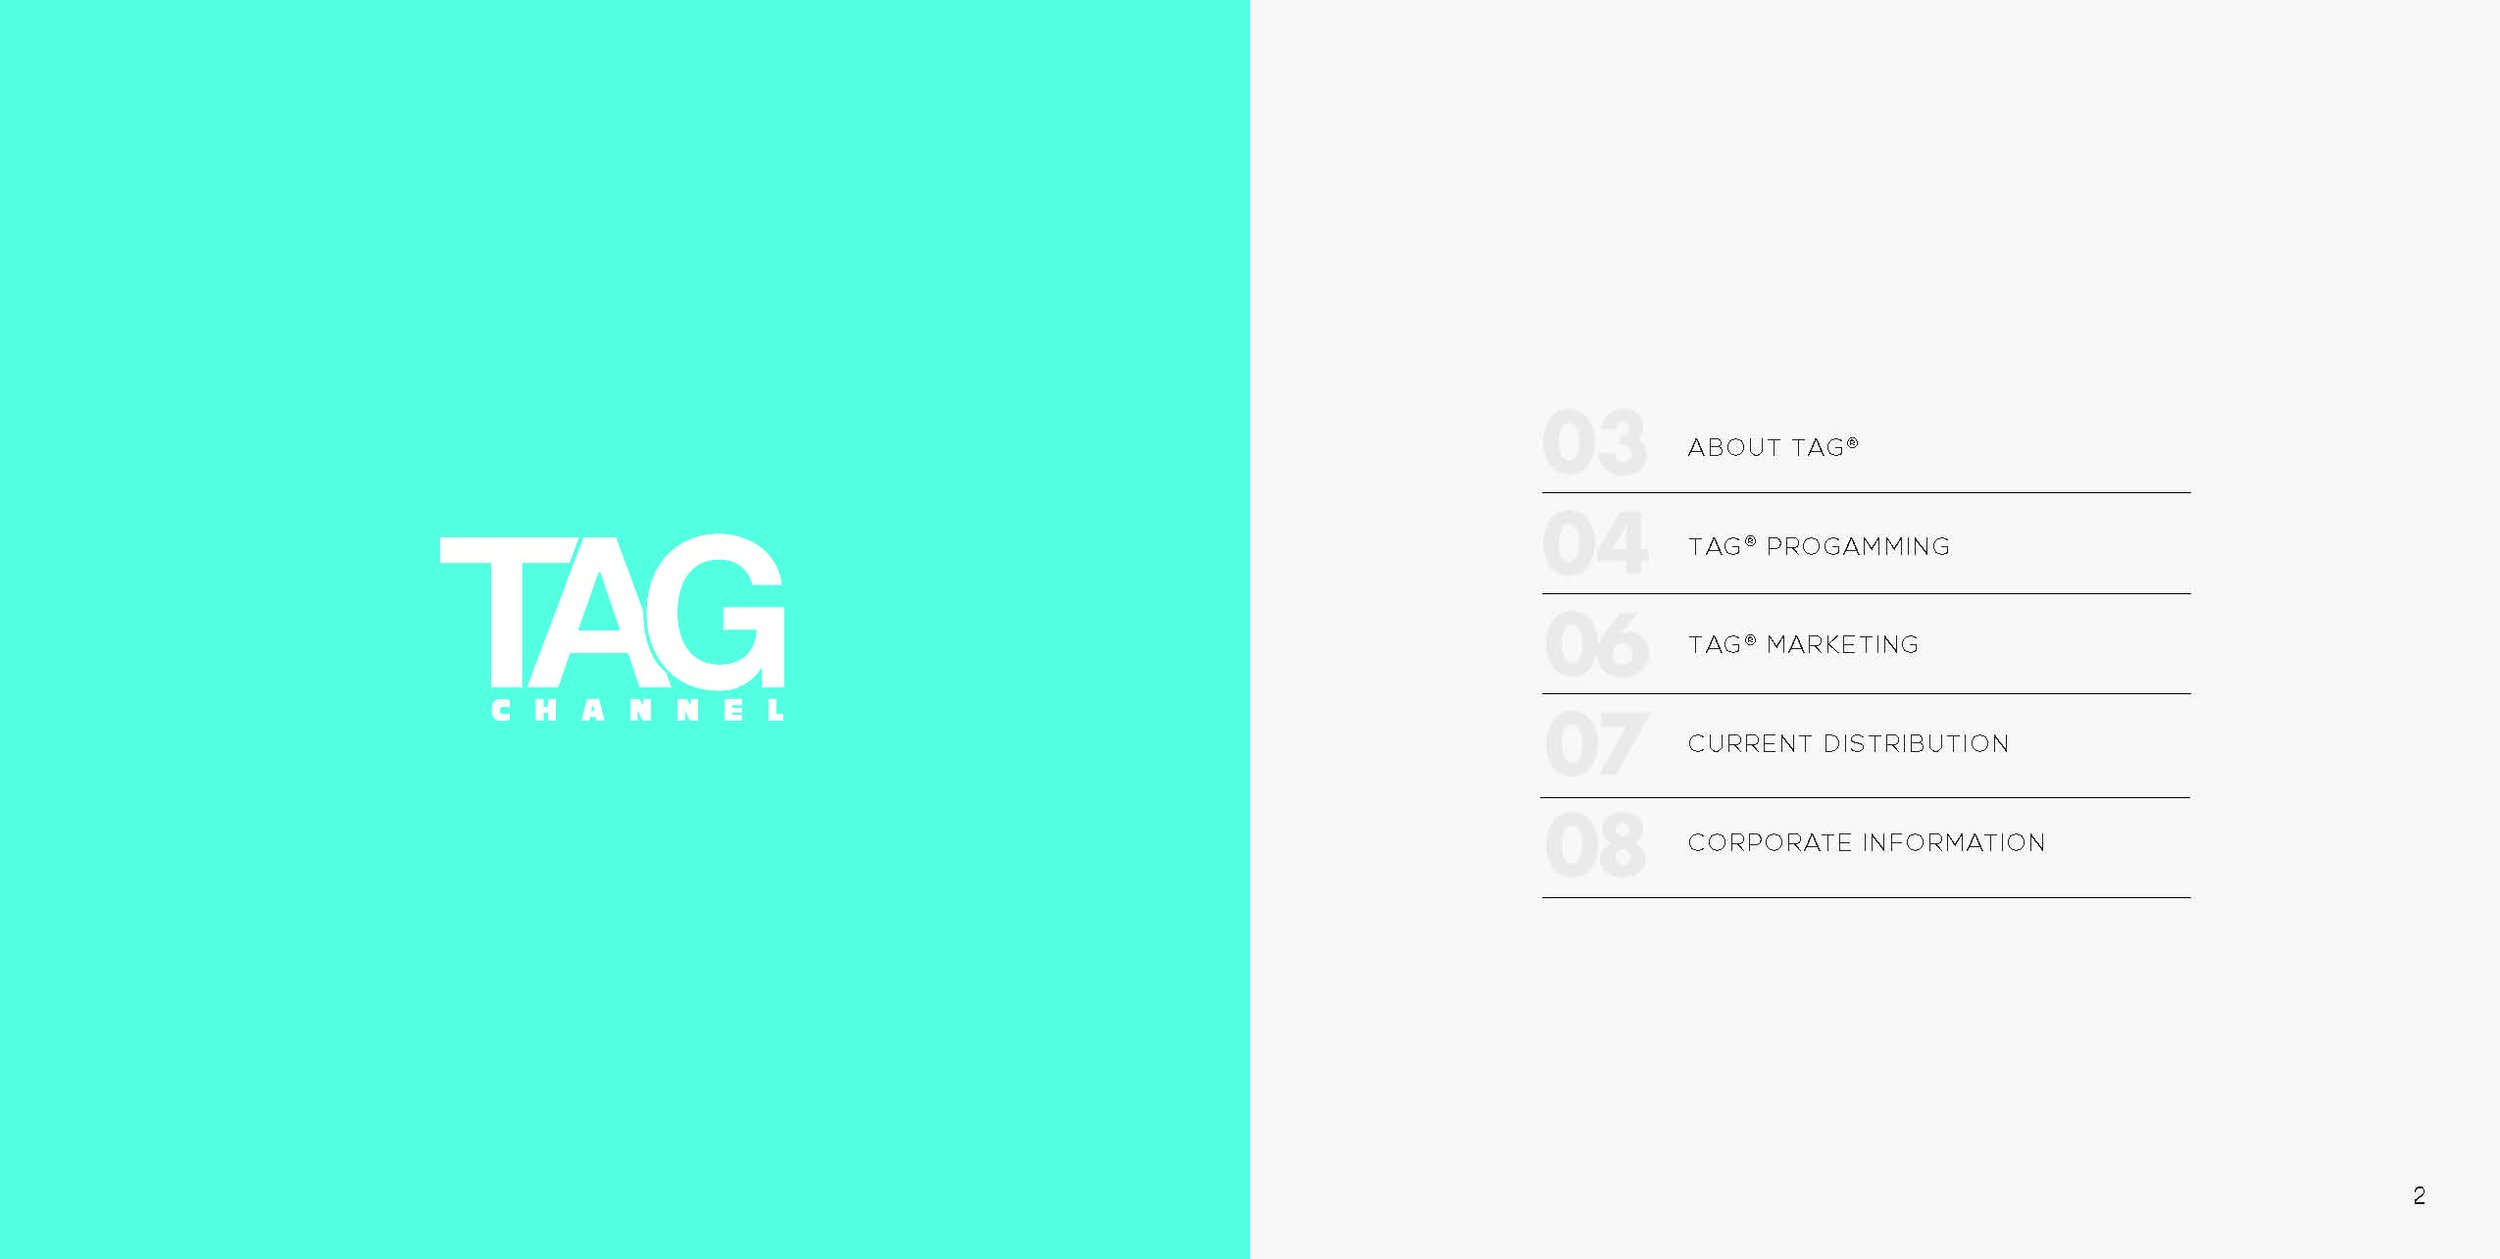 1395-TAG Channel Brand Deck_small_Page_2.jpg